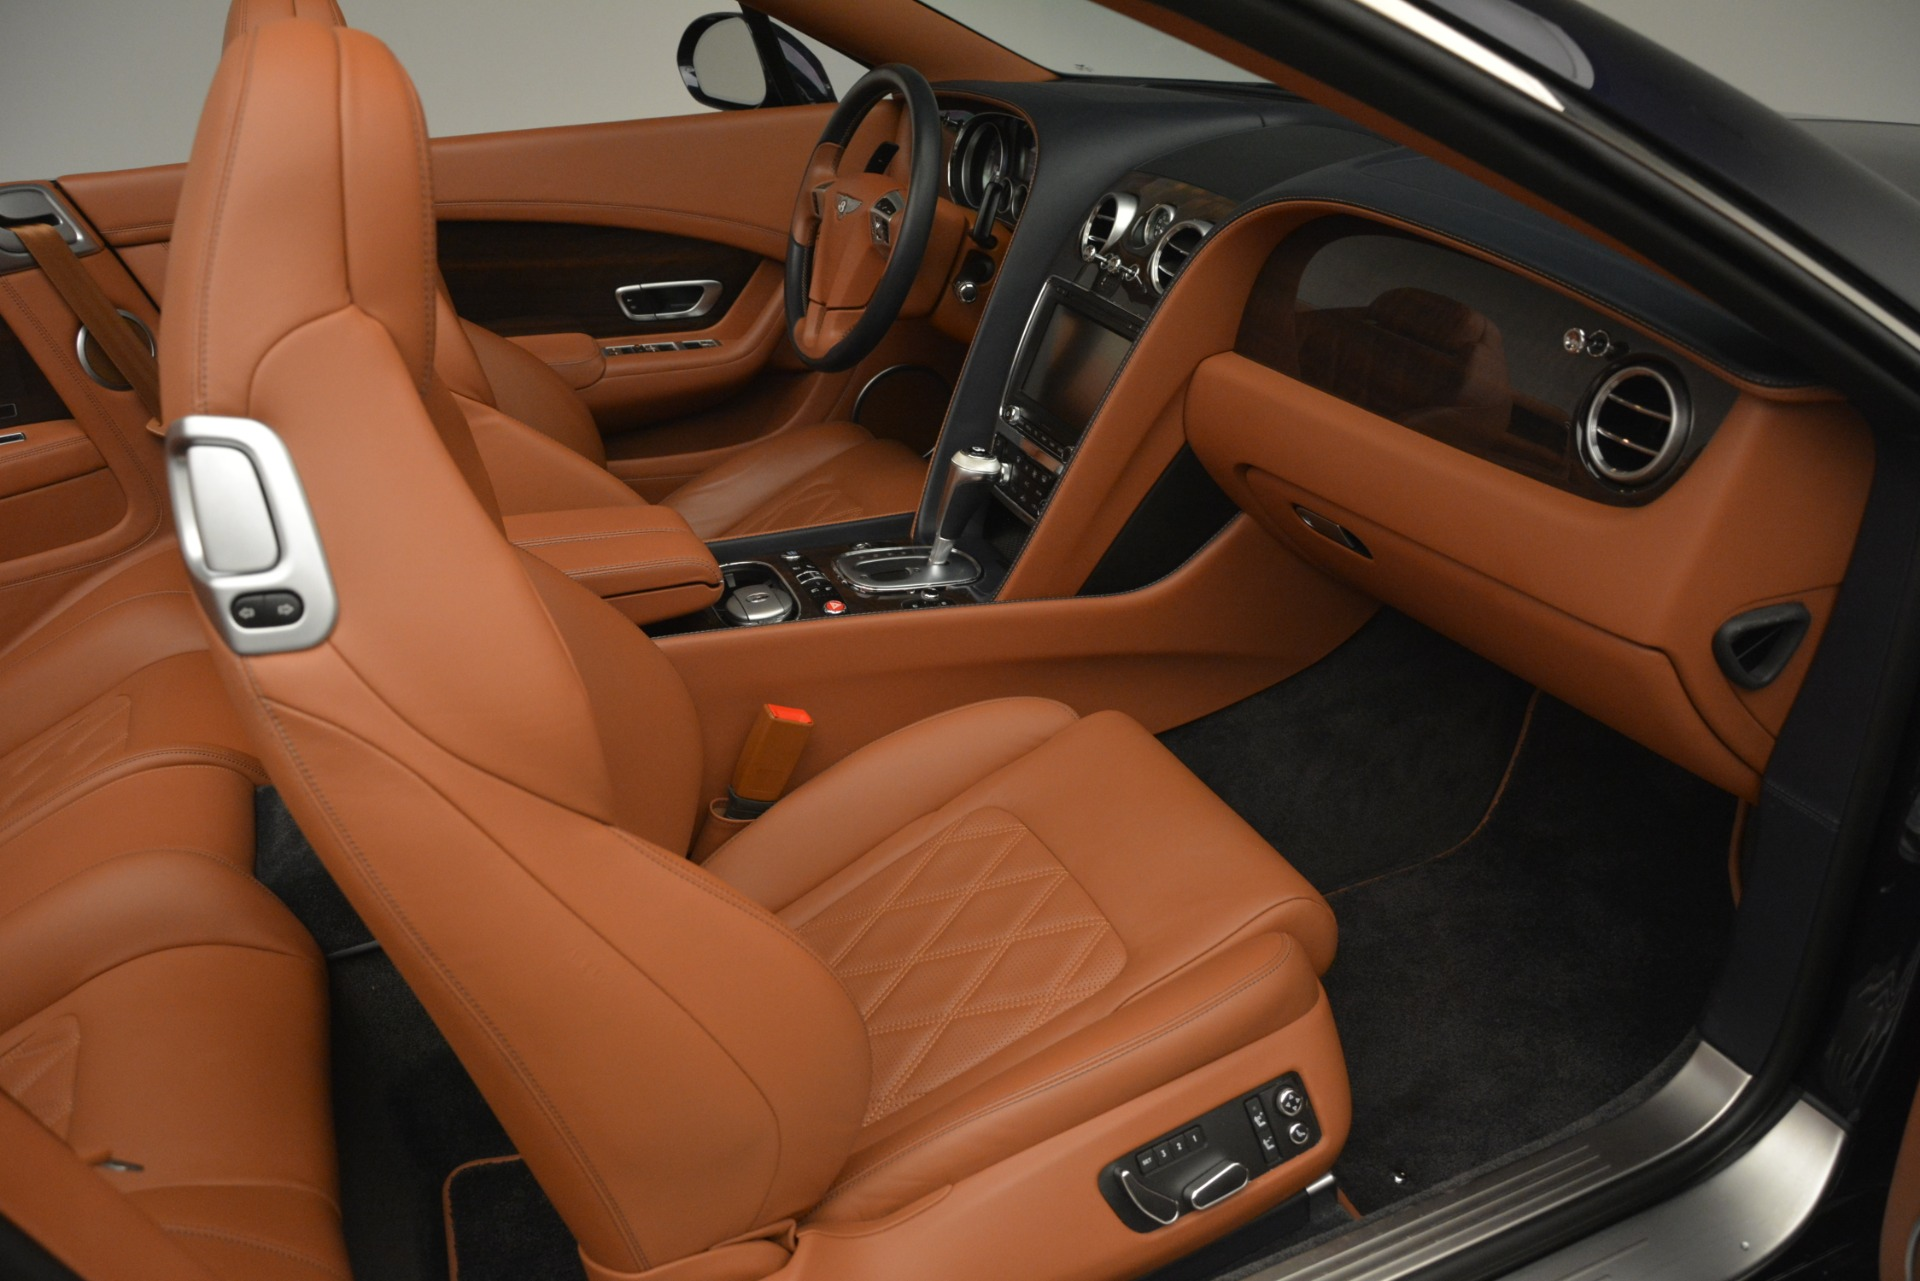 Used 2014 Bentley Continental GT Speed For Sale In Westport, CT 3026_p30